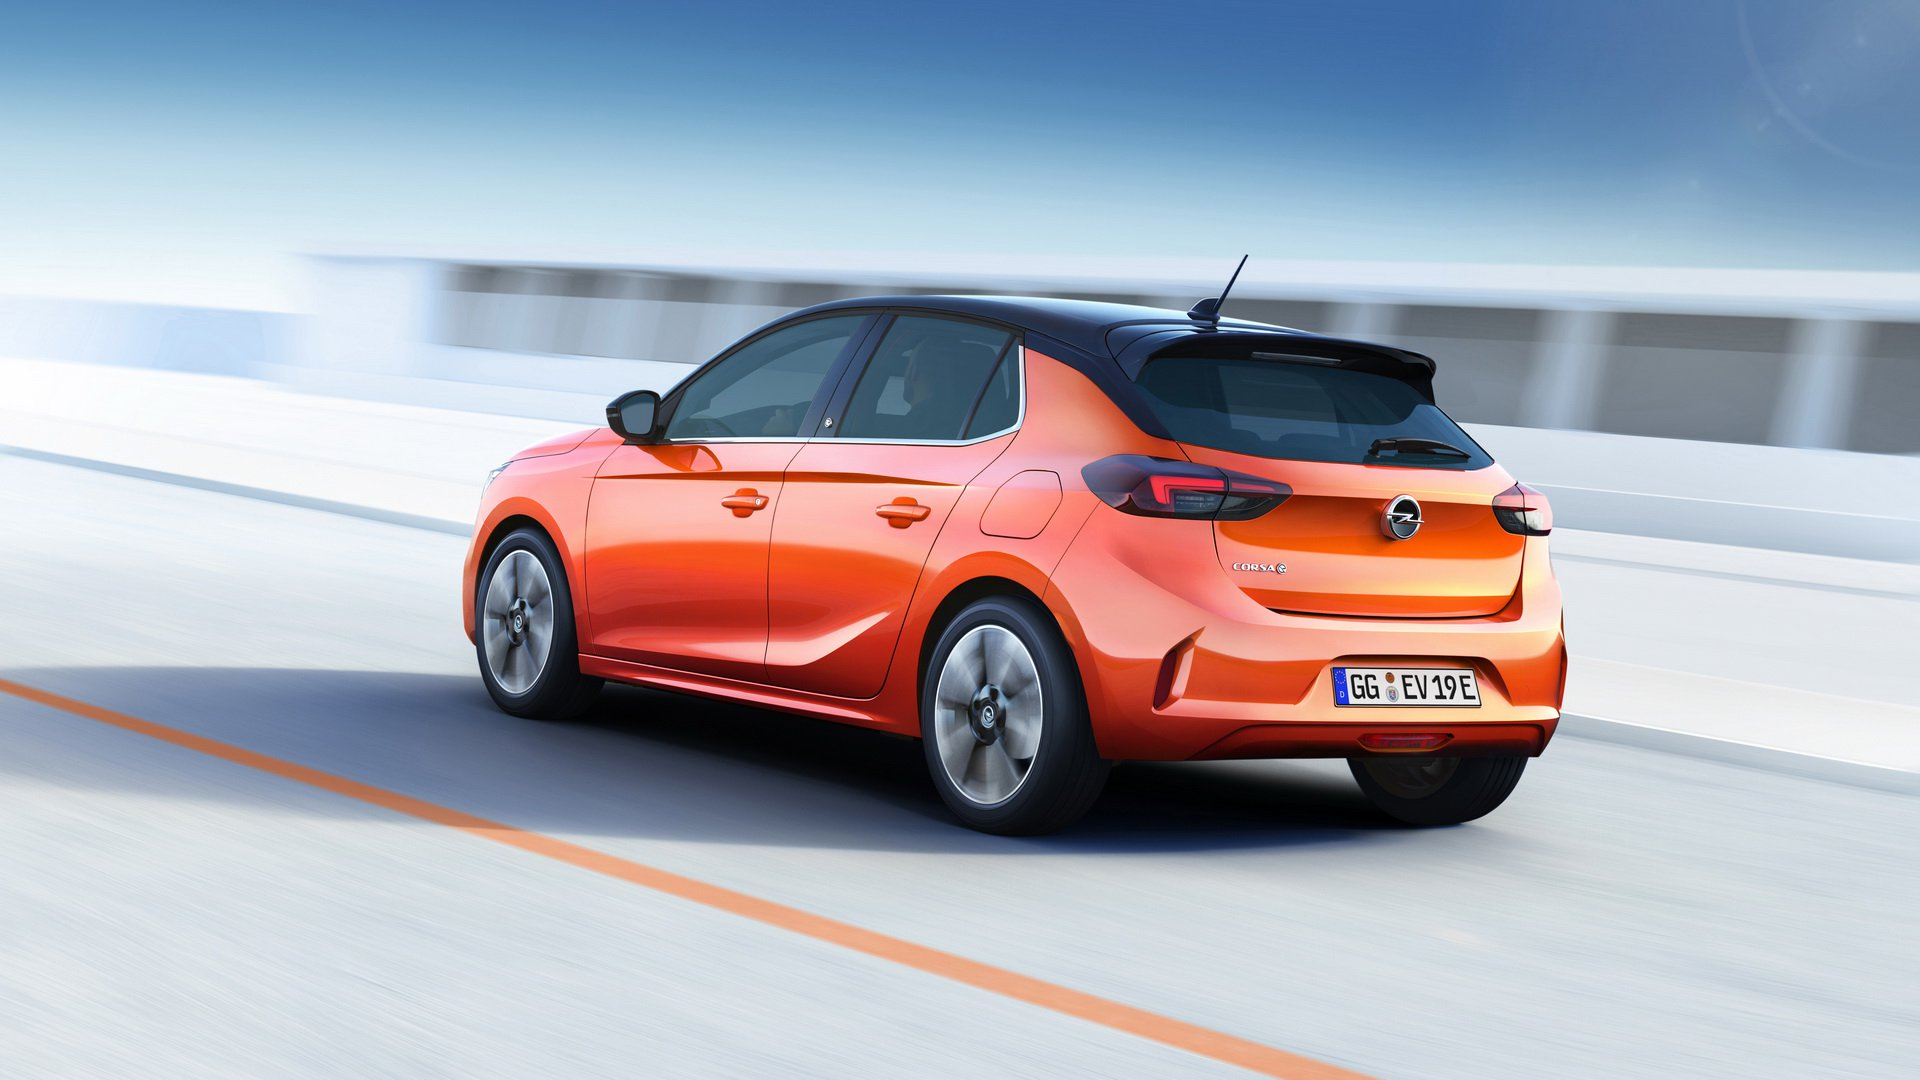 2020 opel corsae takes the fight to volkswagen's id3